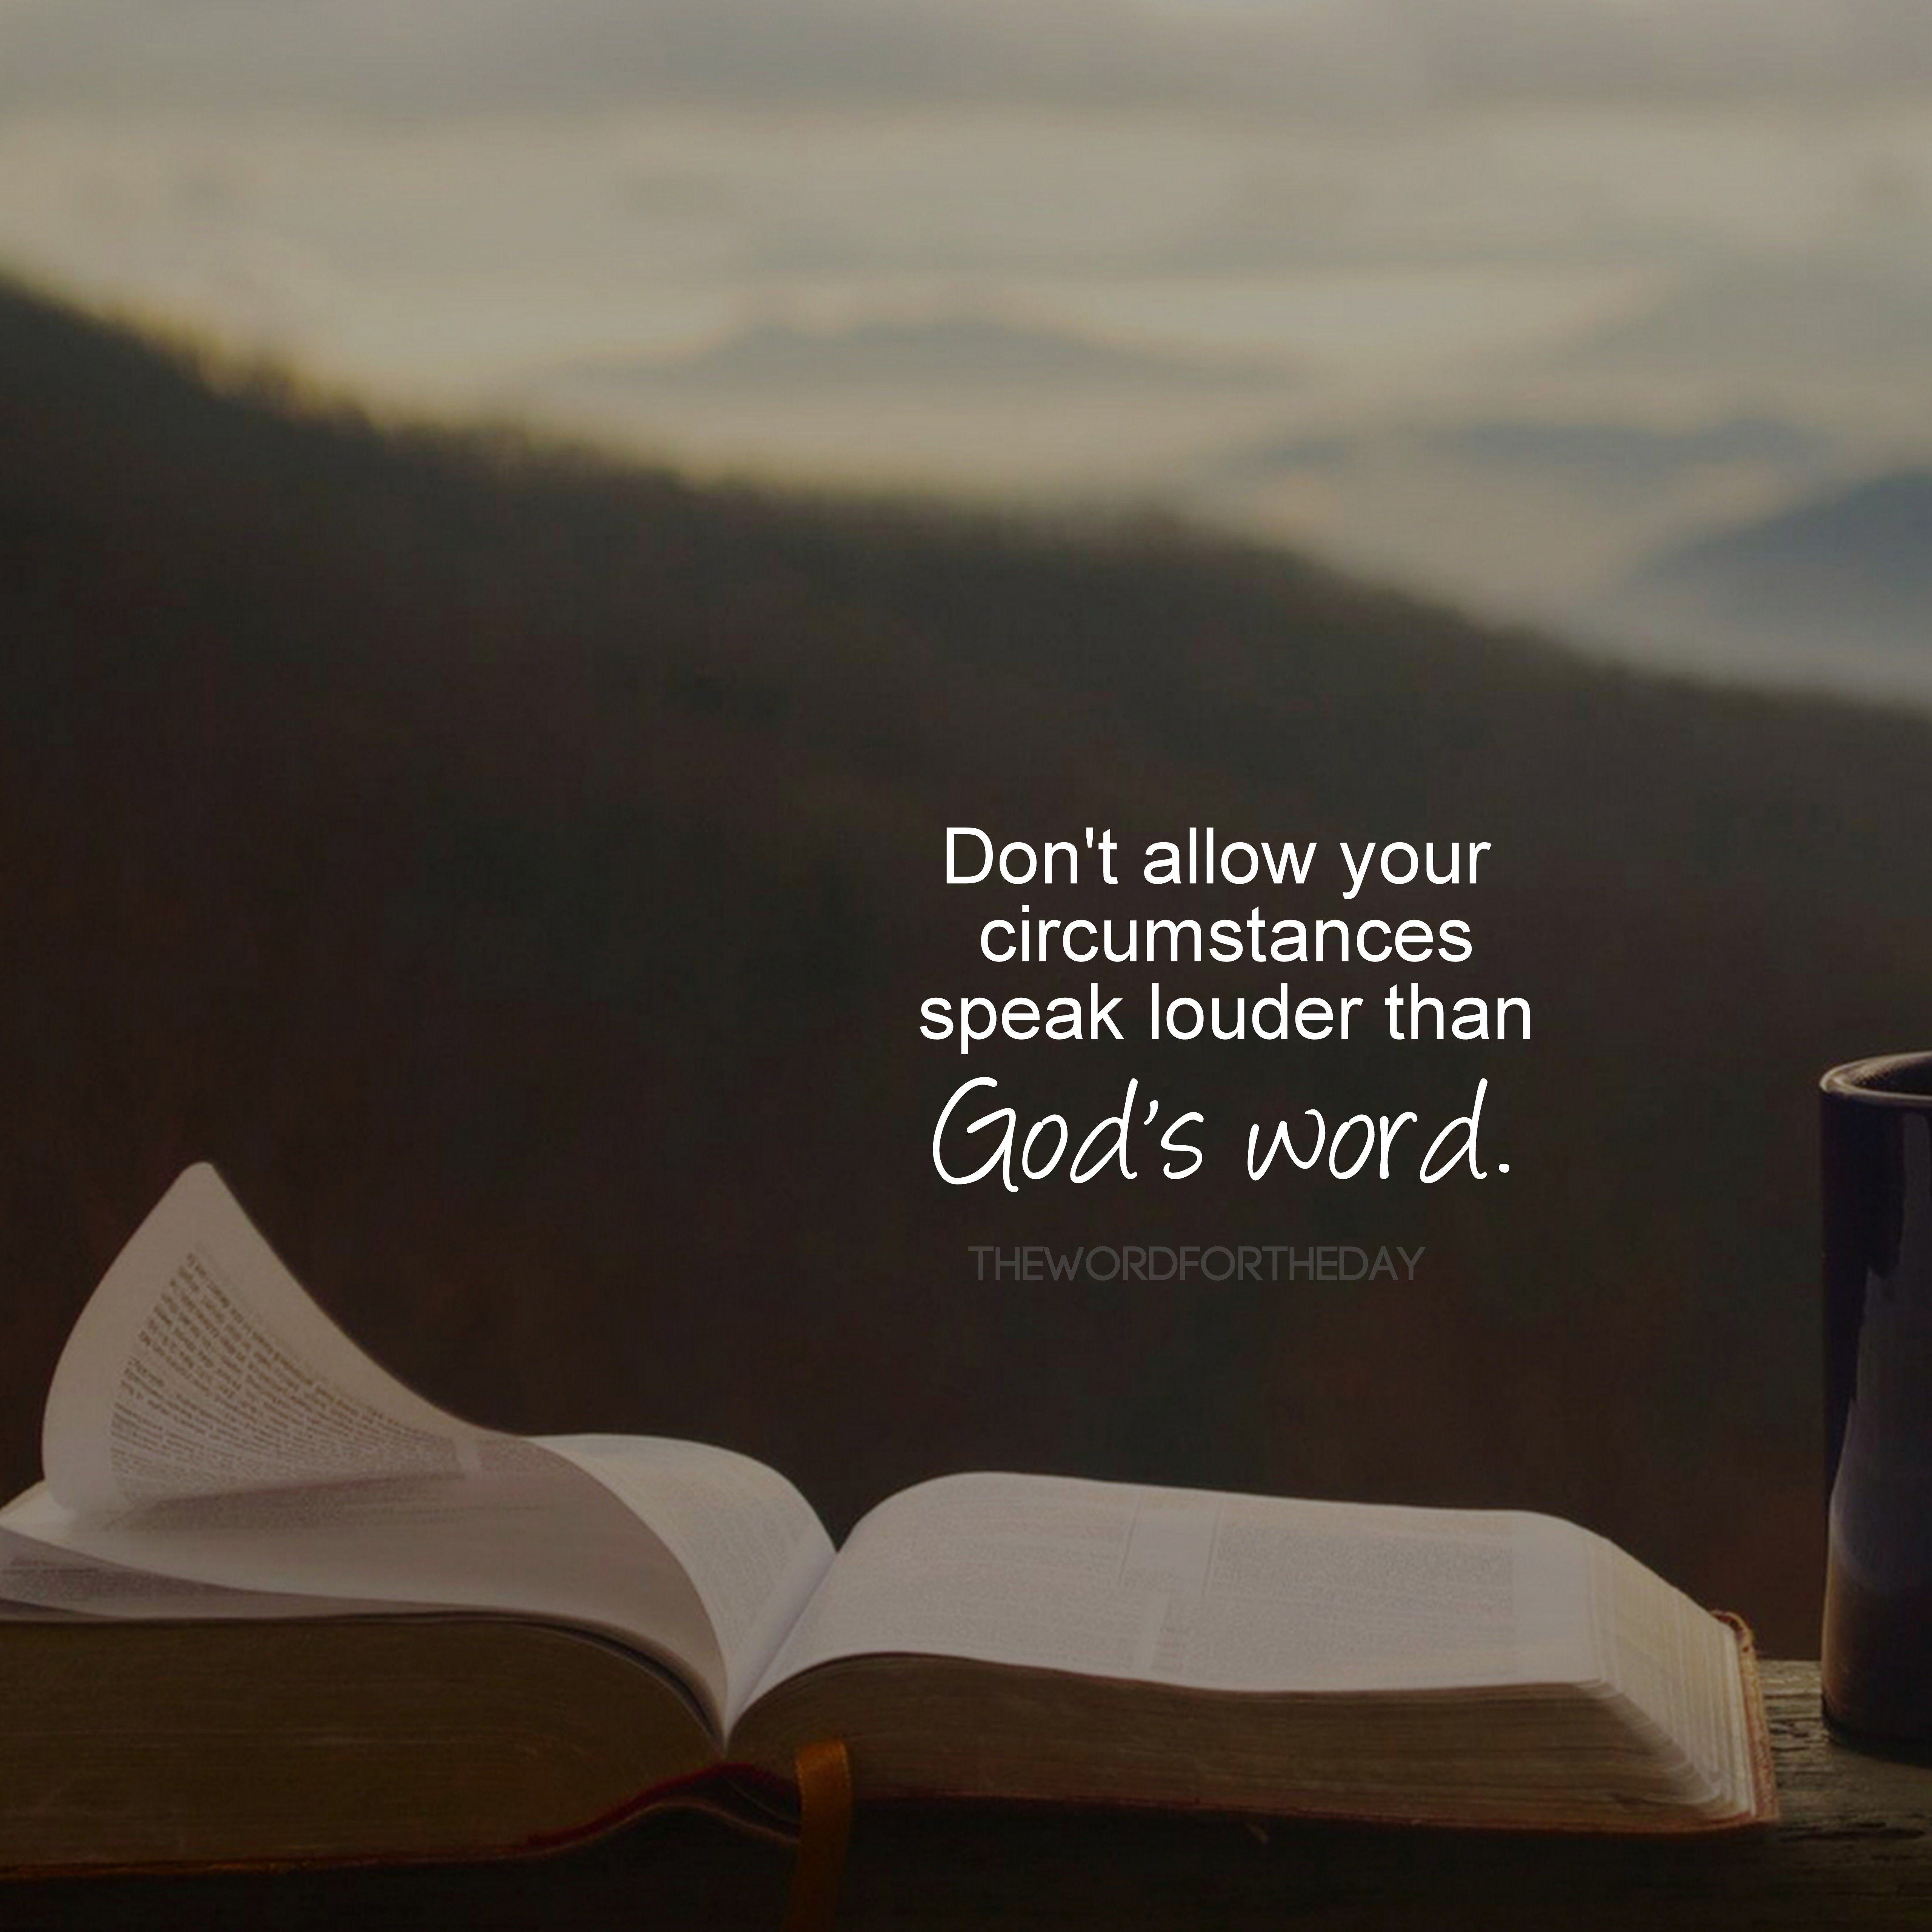 God's Word Quotes Bible Bible Quotes Encouragement Hope The Word For The Day